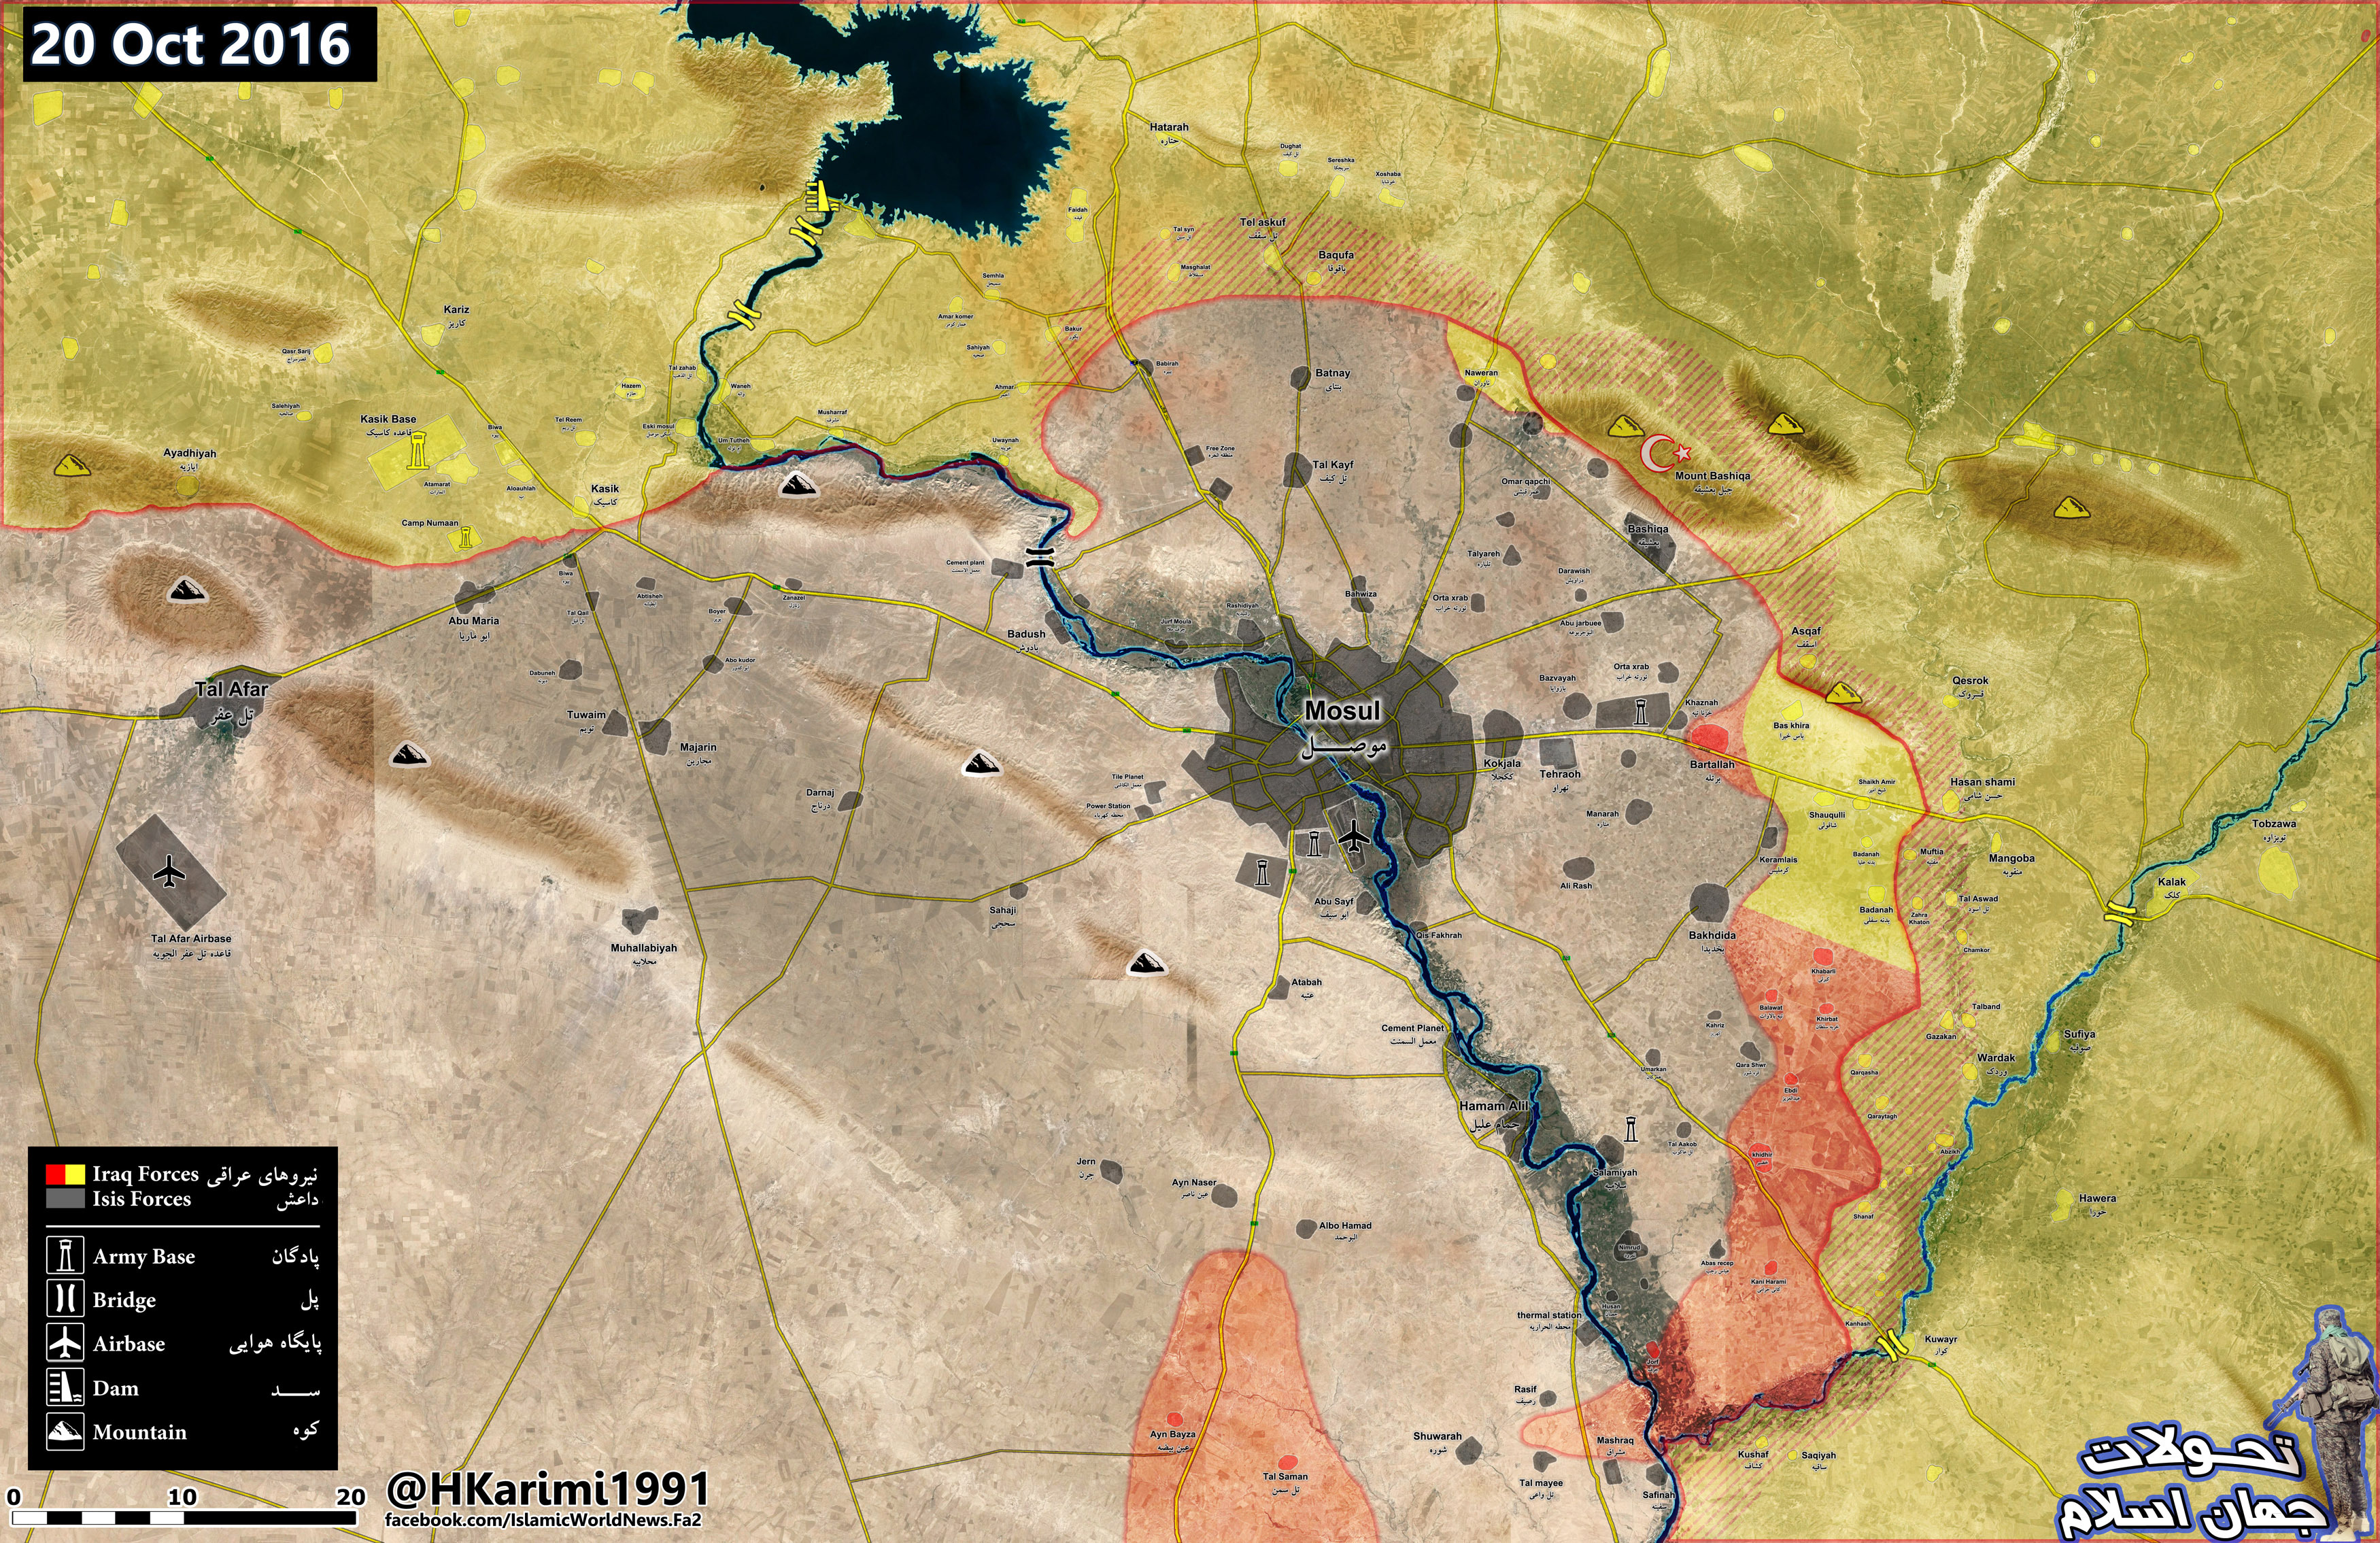 Iraqi Map Update: Results of 4th Day of Battle for Mosul